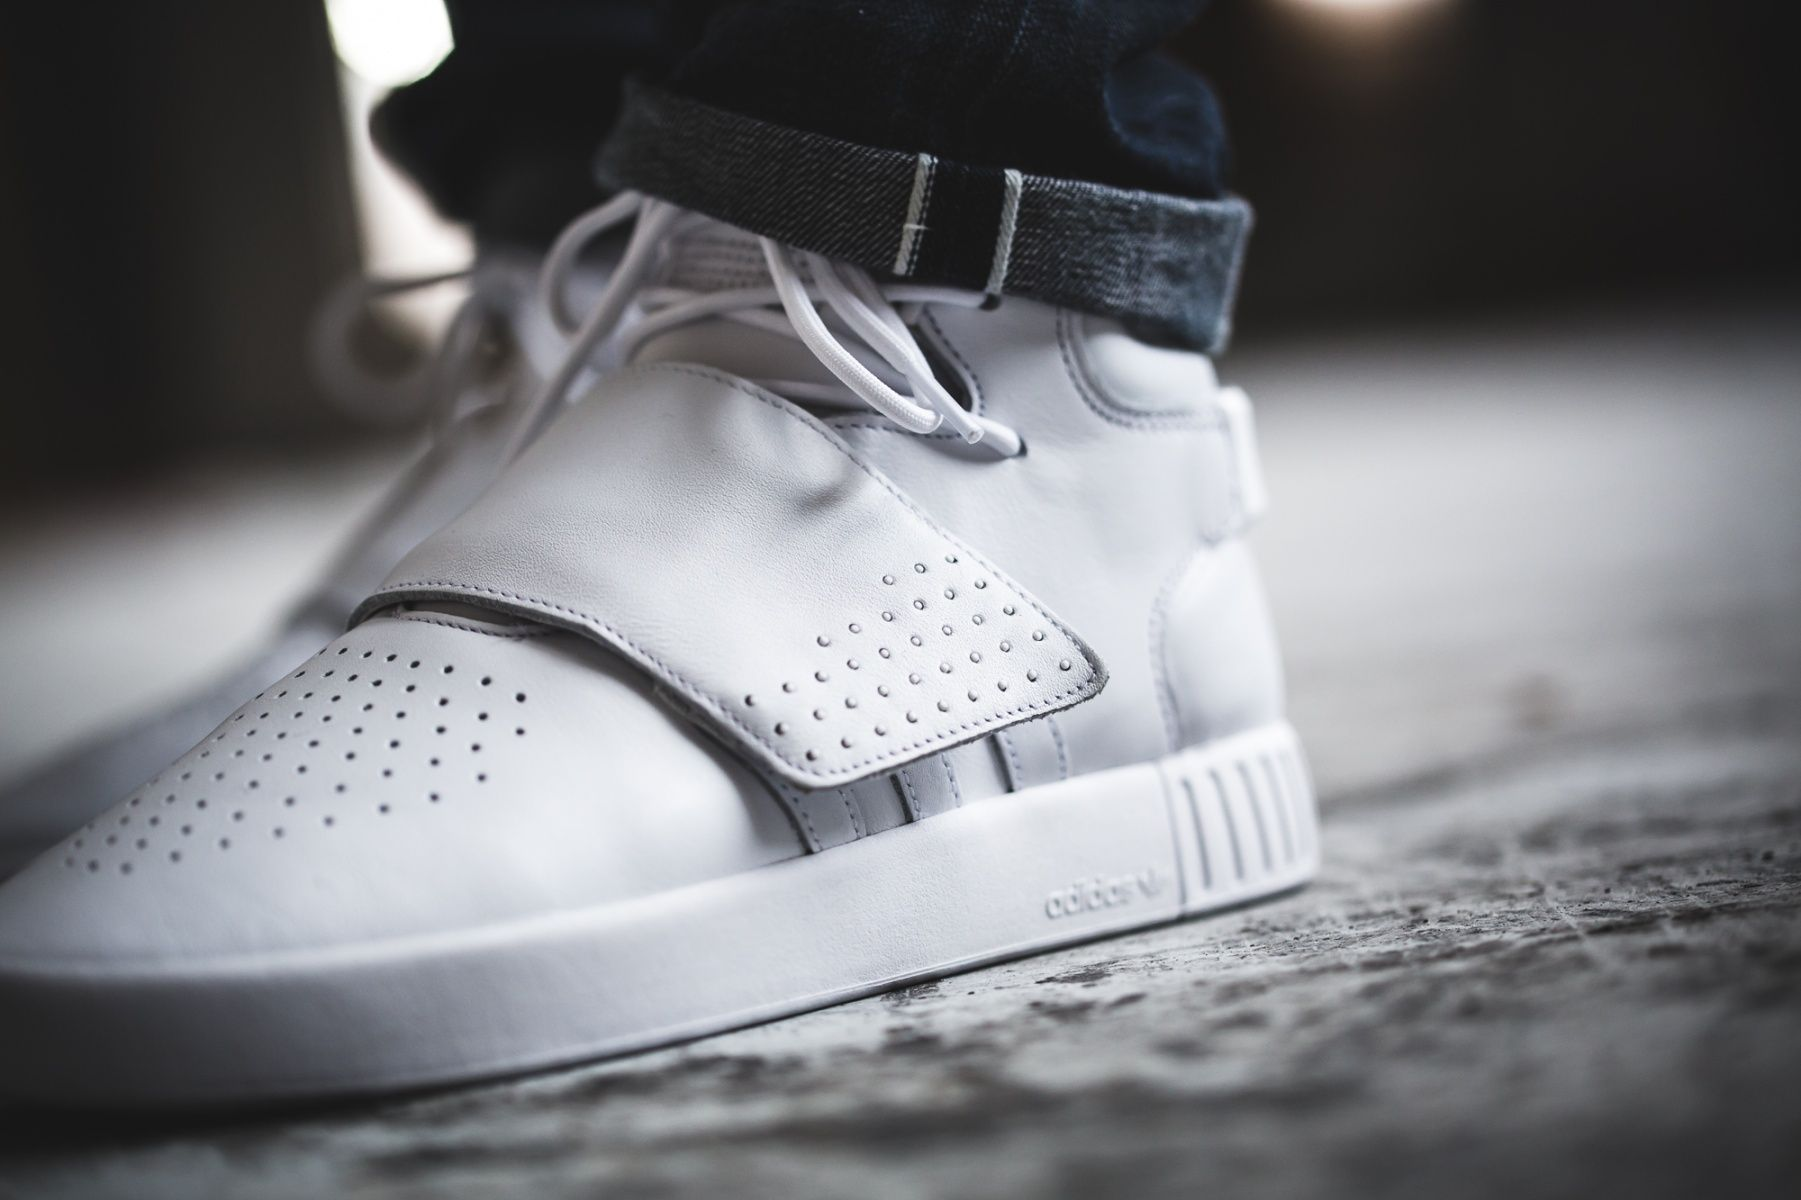 Adidas Tubular Invader Strap Street Leisure Athletic